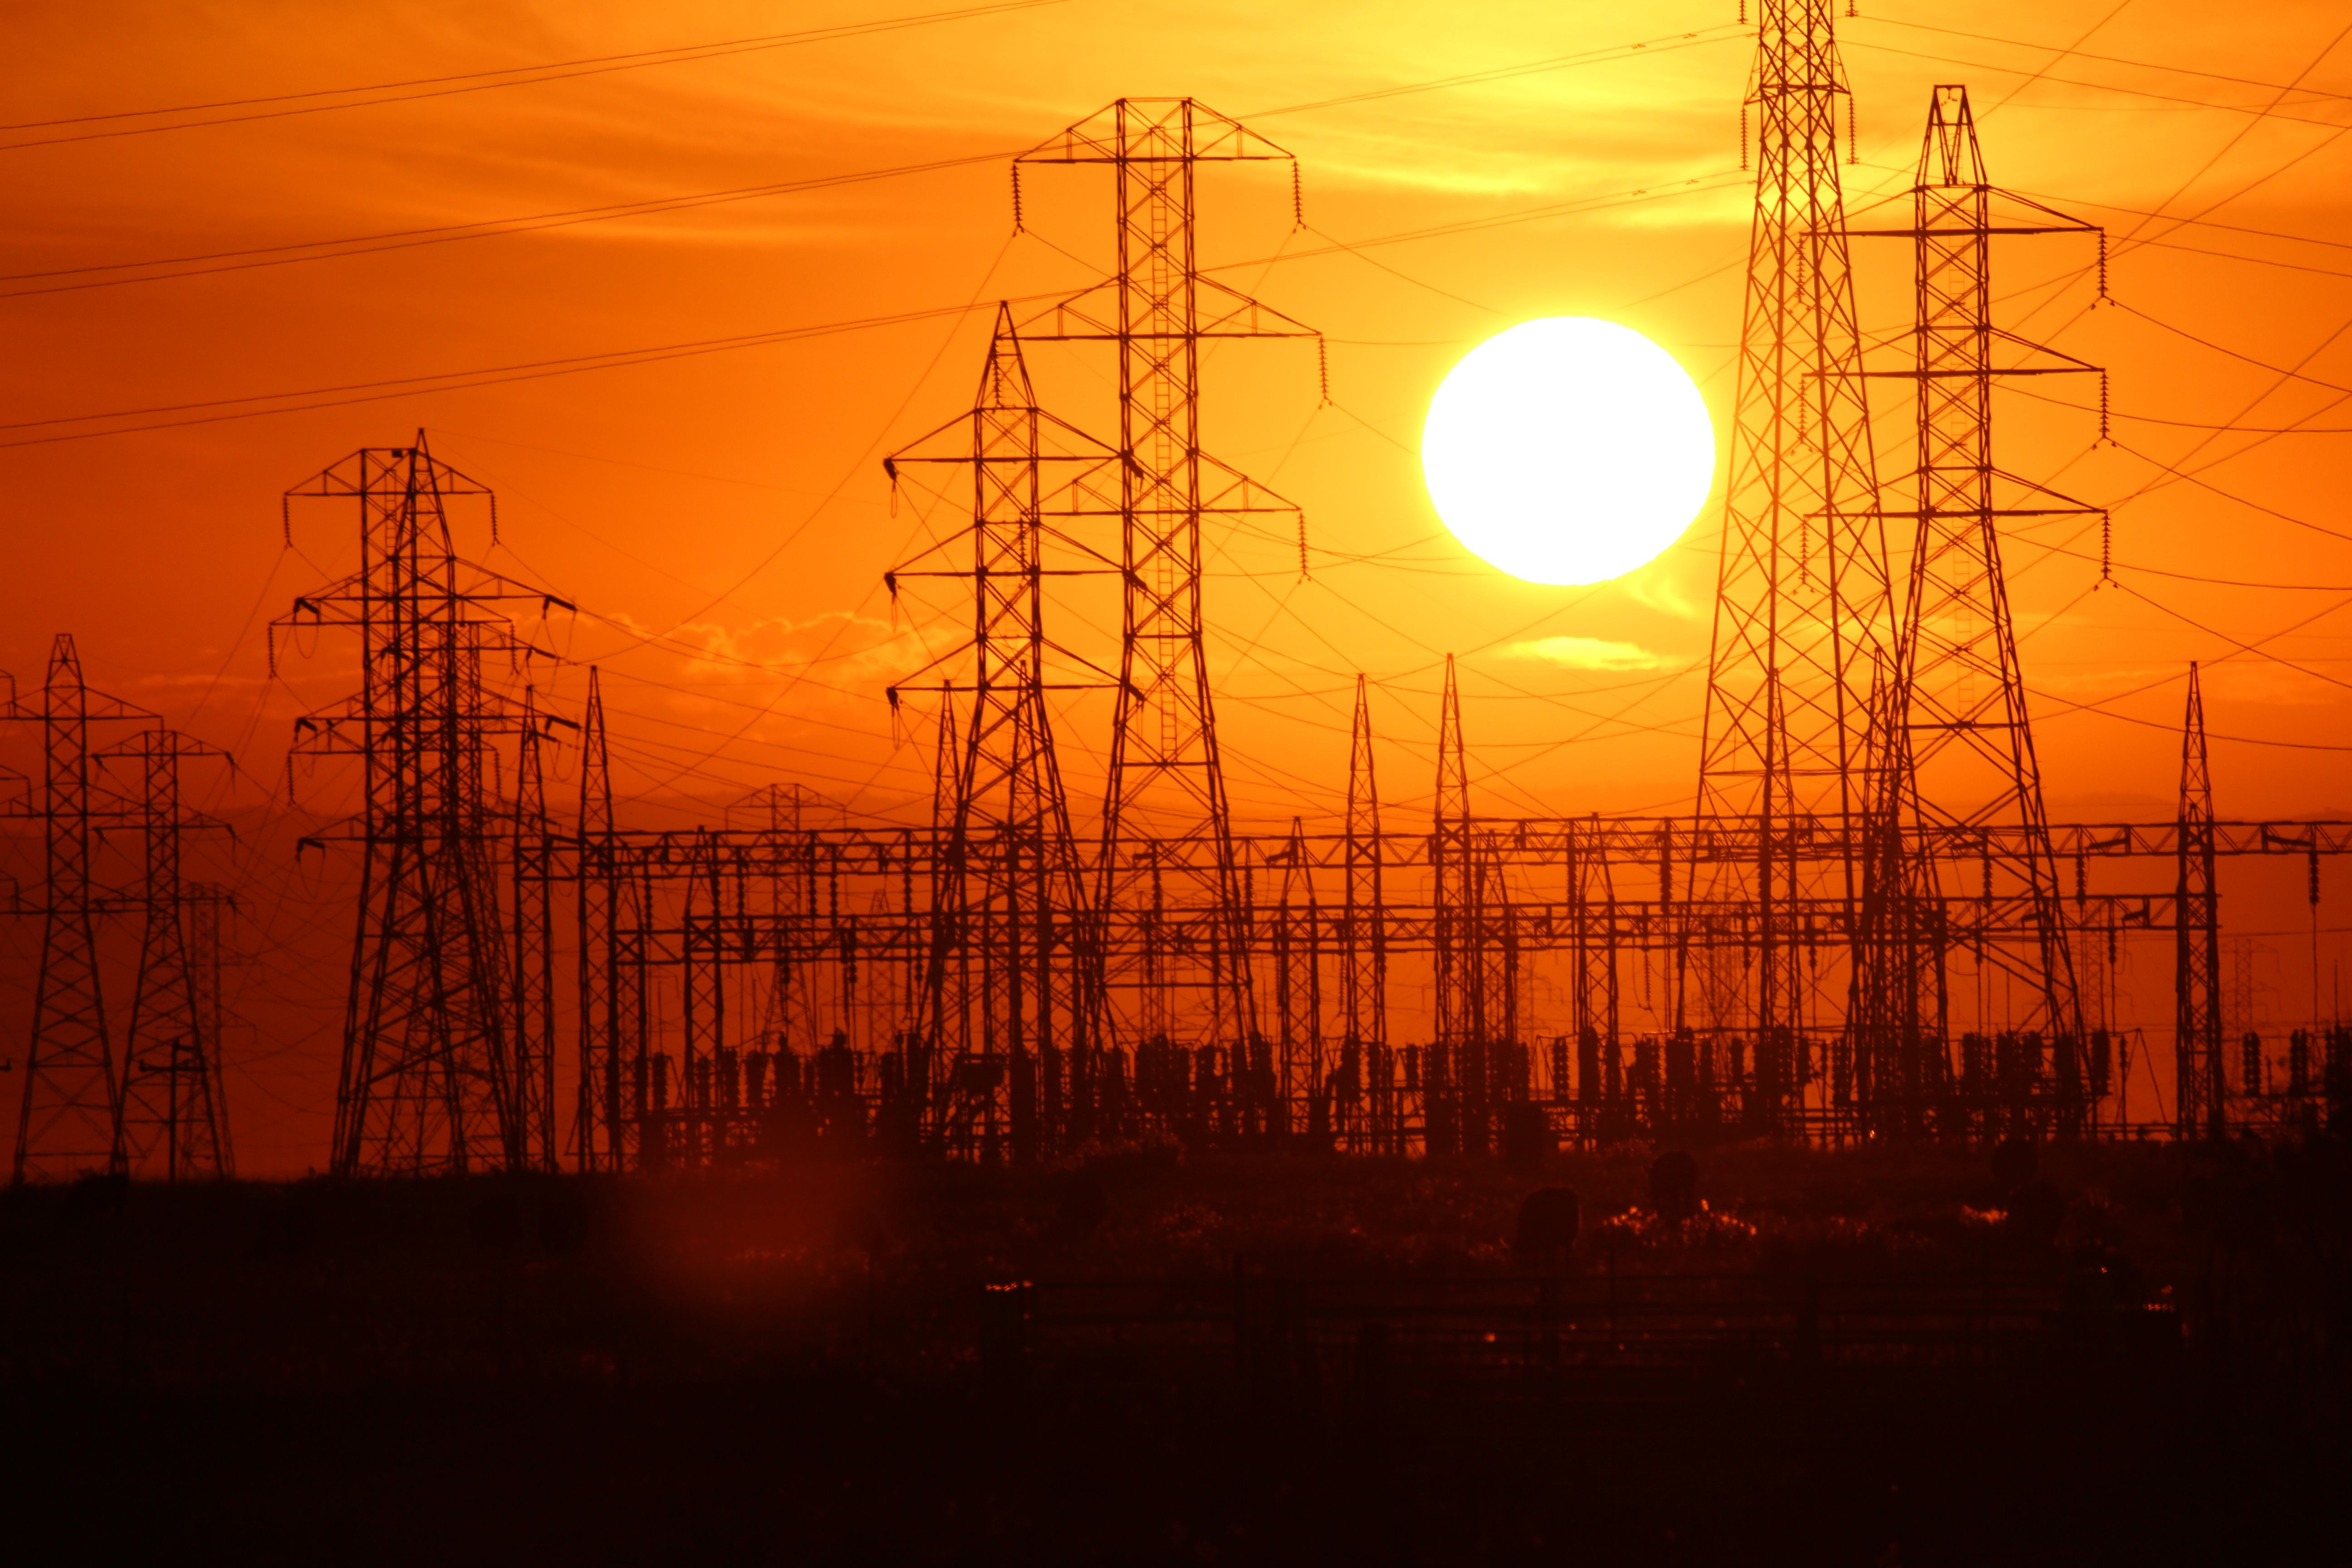 Sunset behind power lines | For the Linemen | Pinterest | Sunset ...